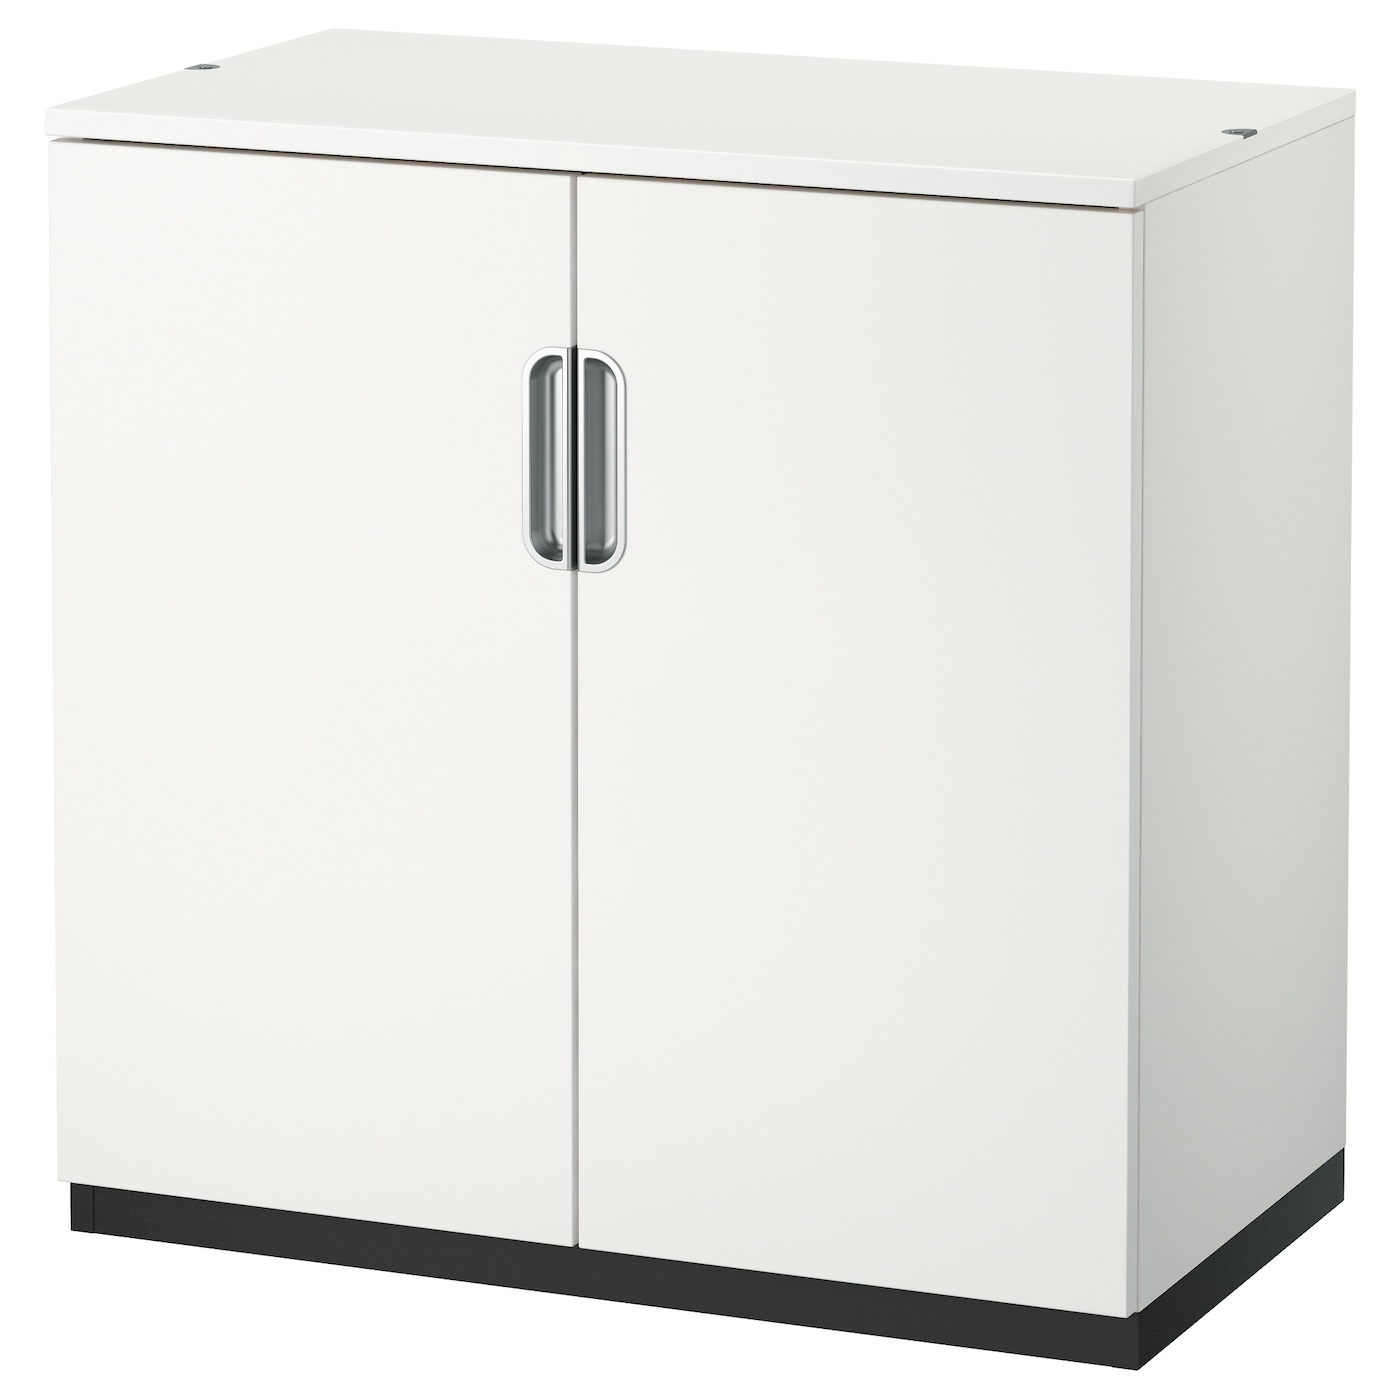 galant cabinet with doors white 80 x 80 cm ikea. Black Bedroom Furniture Sets. Home Design Ideas